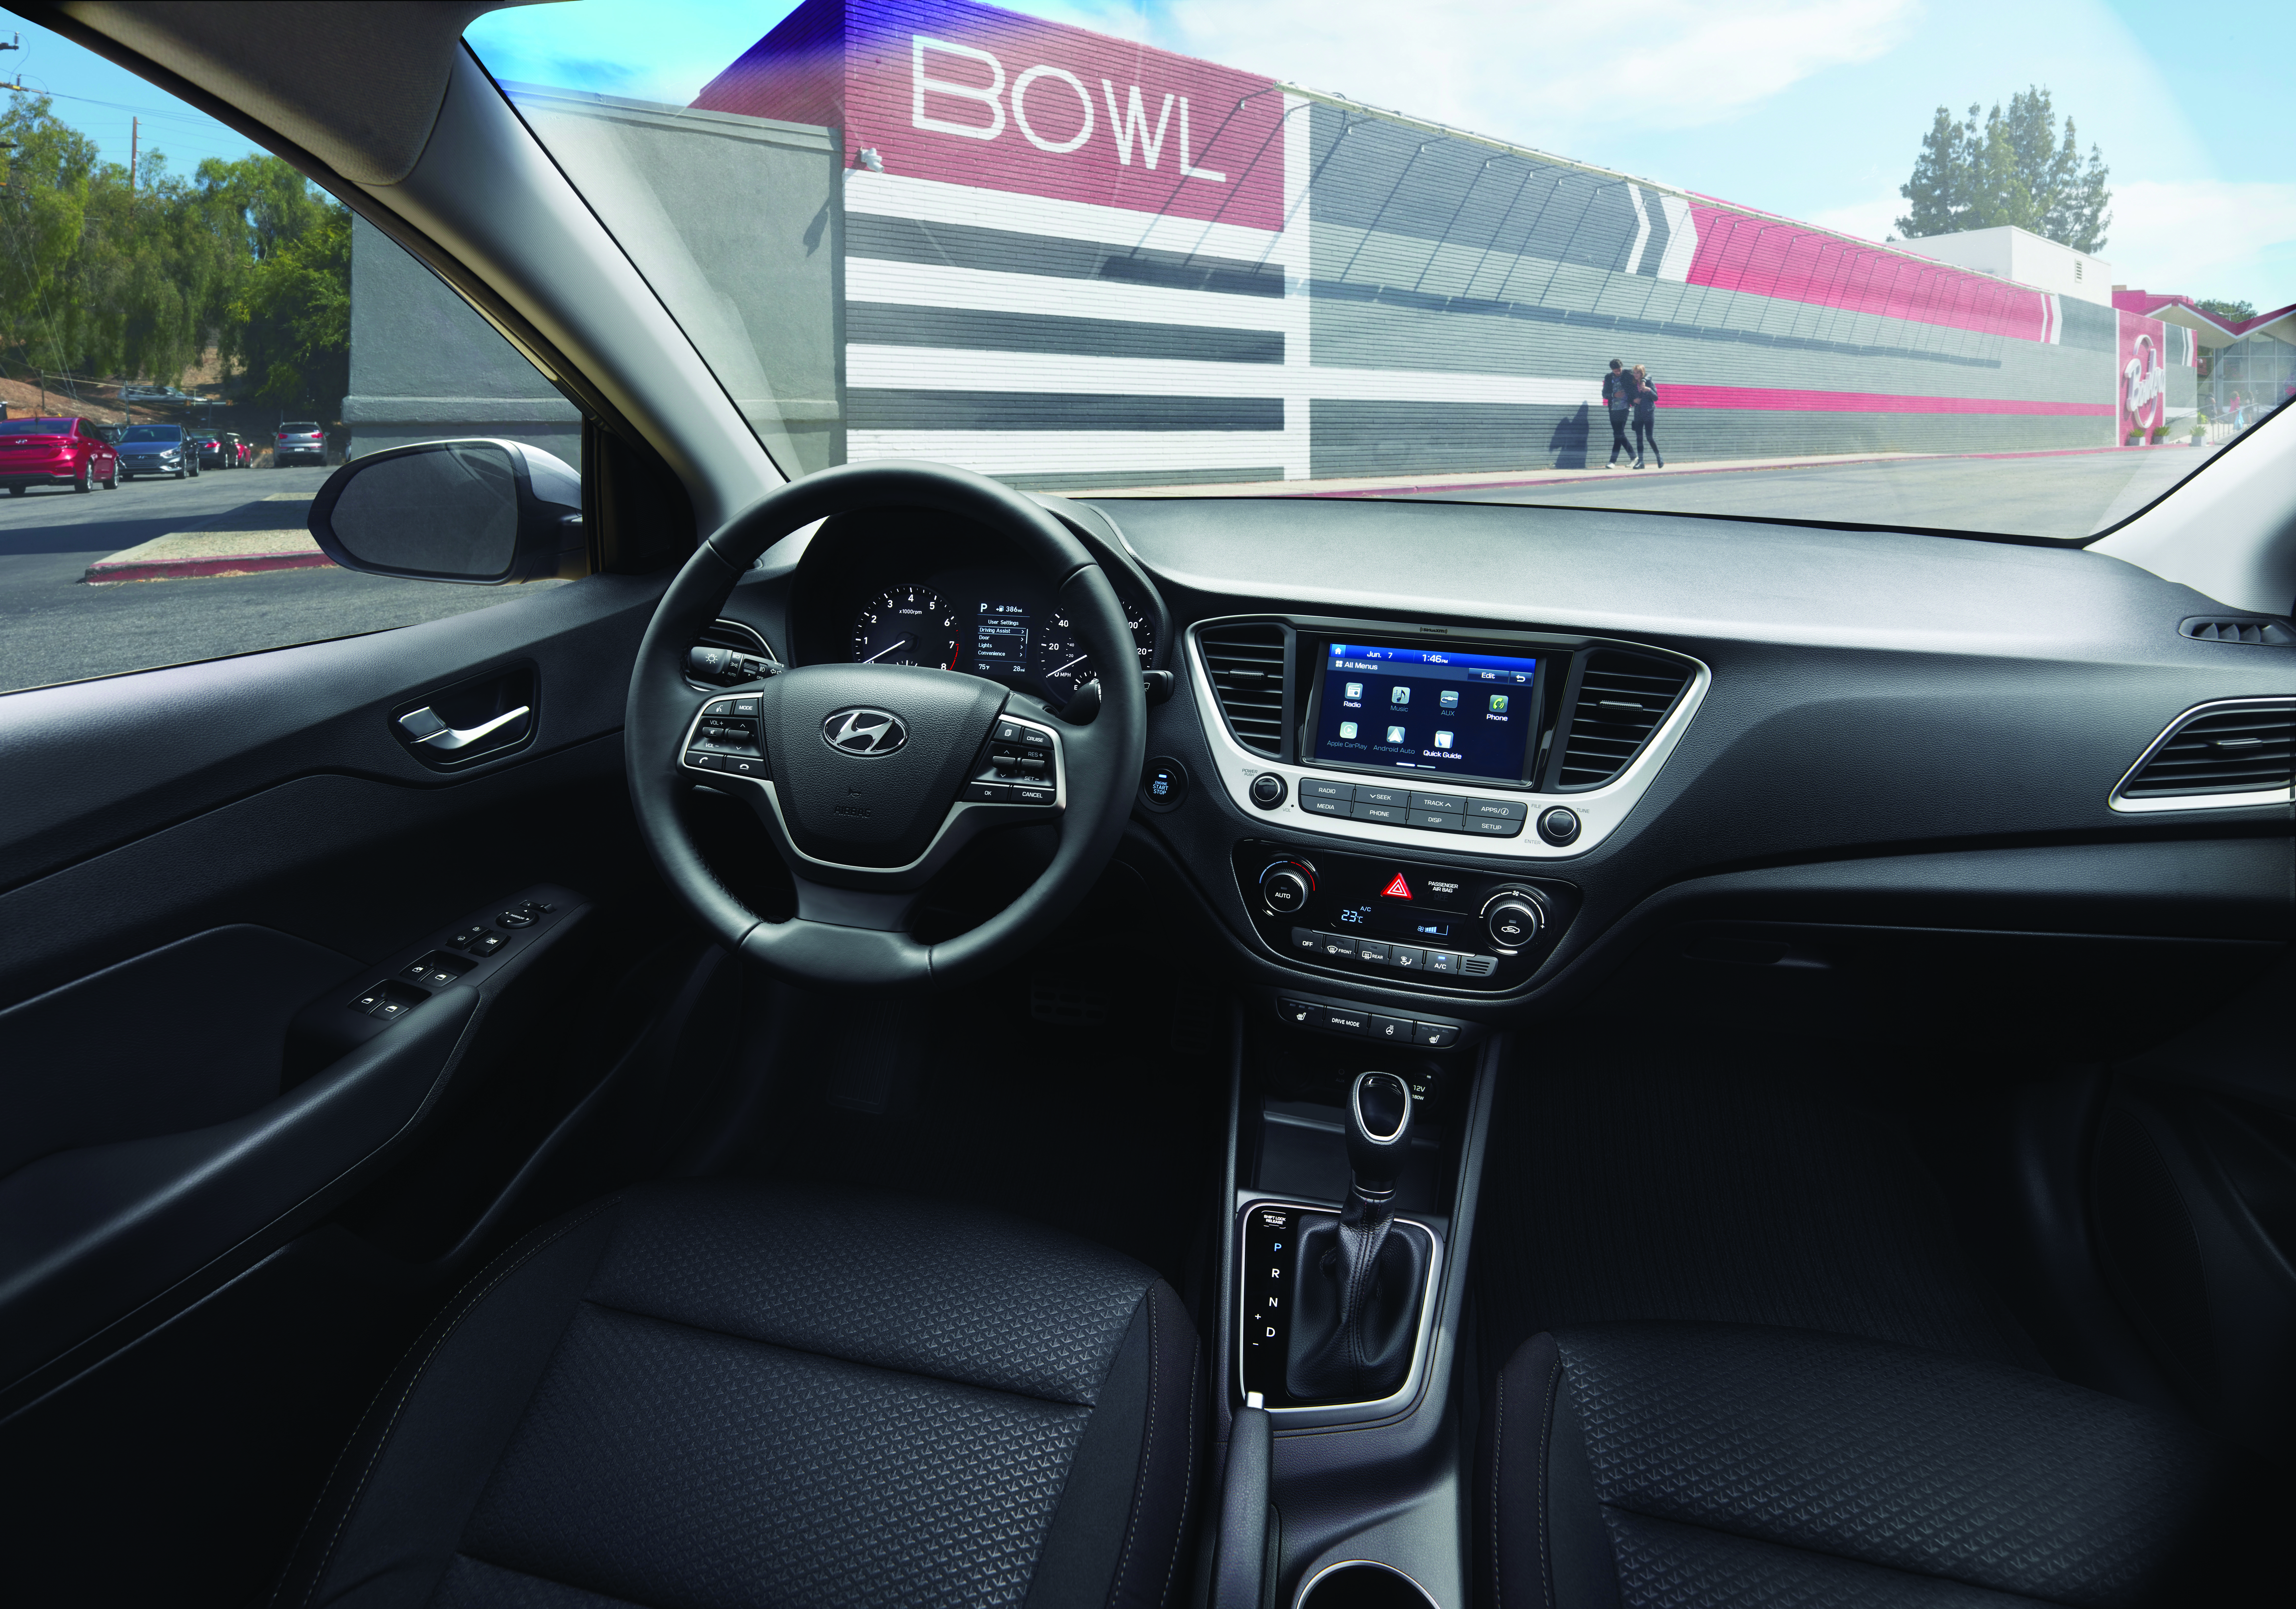 2018_accent_interior_parked_in_front_of_store_(1)_1